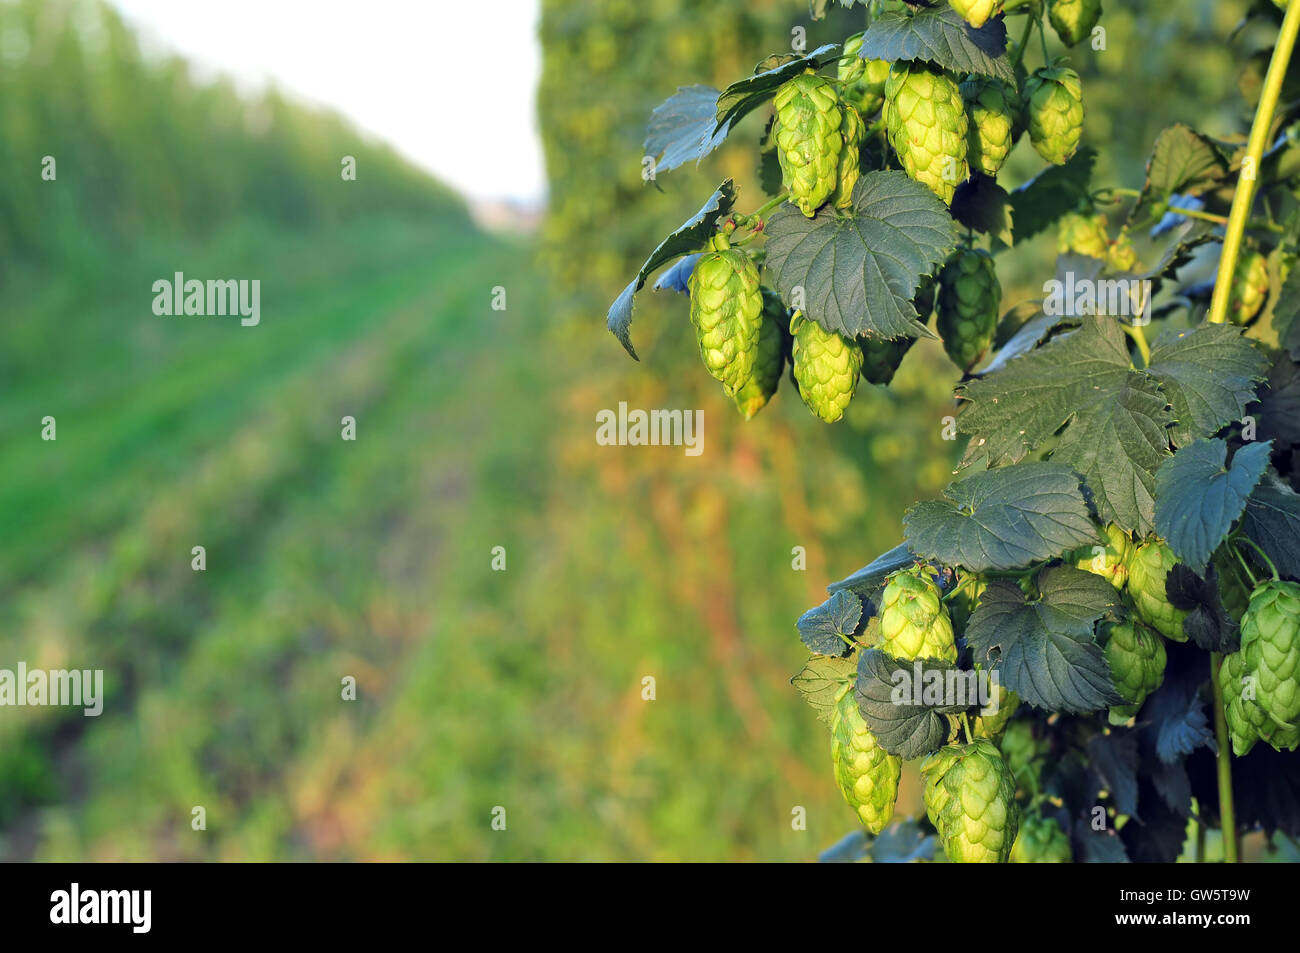 Close up of ripe green hops, growing in a field - Stock Image